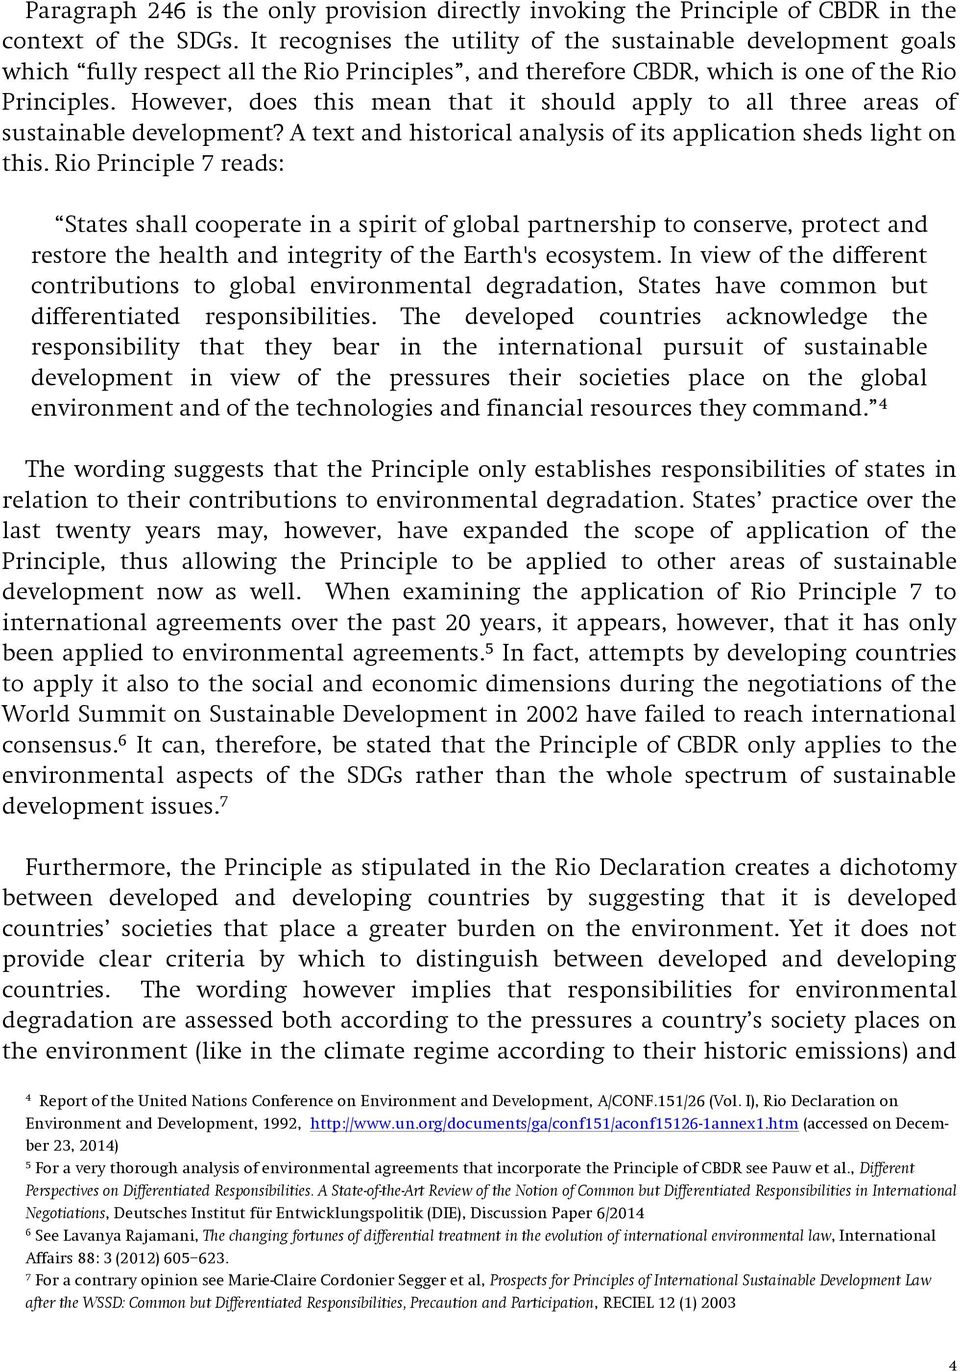 However, does this mean that it should apply to all three areas of sustainable development? A text and historical analysis of its application sheds light on this.